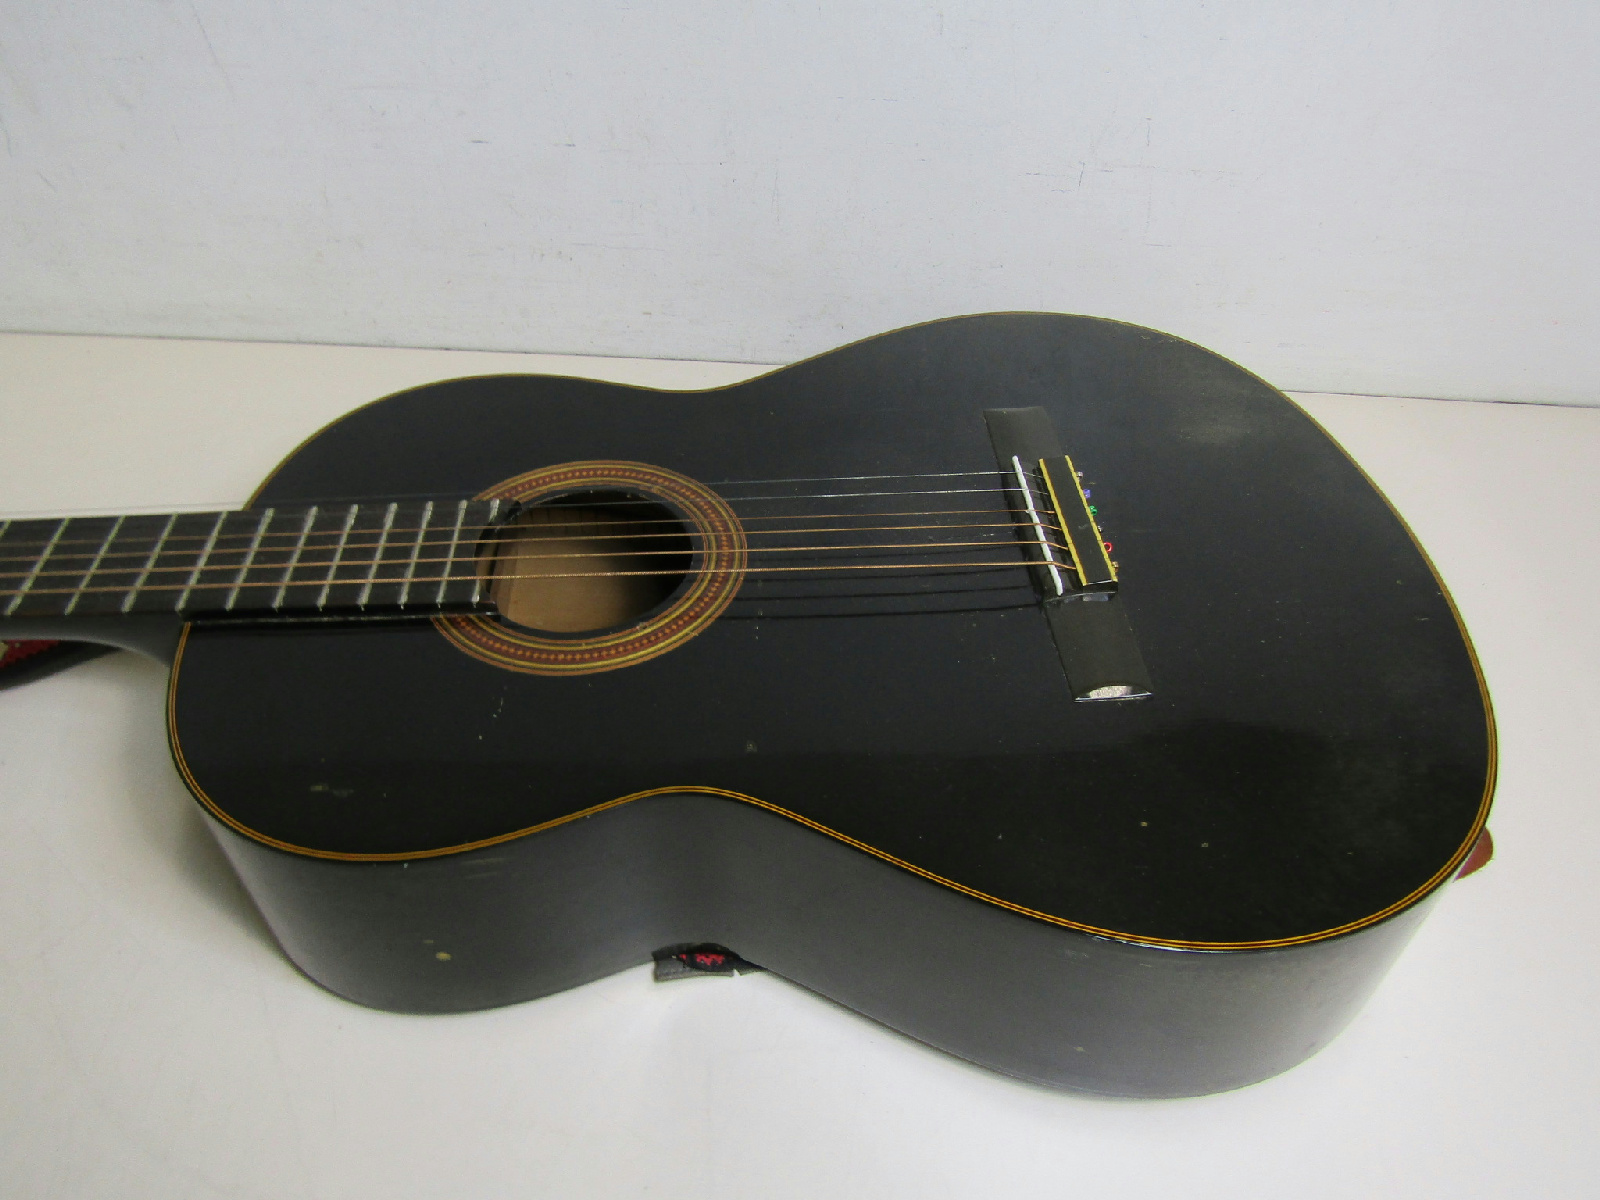 yamaha g55 1 bk special edition acoustic guitar in hard case parts repair ebay. Black Bedroom Furniture Sets. Home Design Ideas